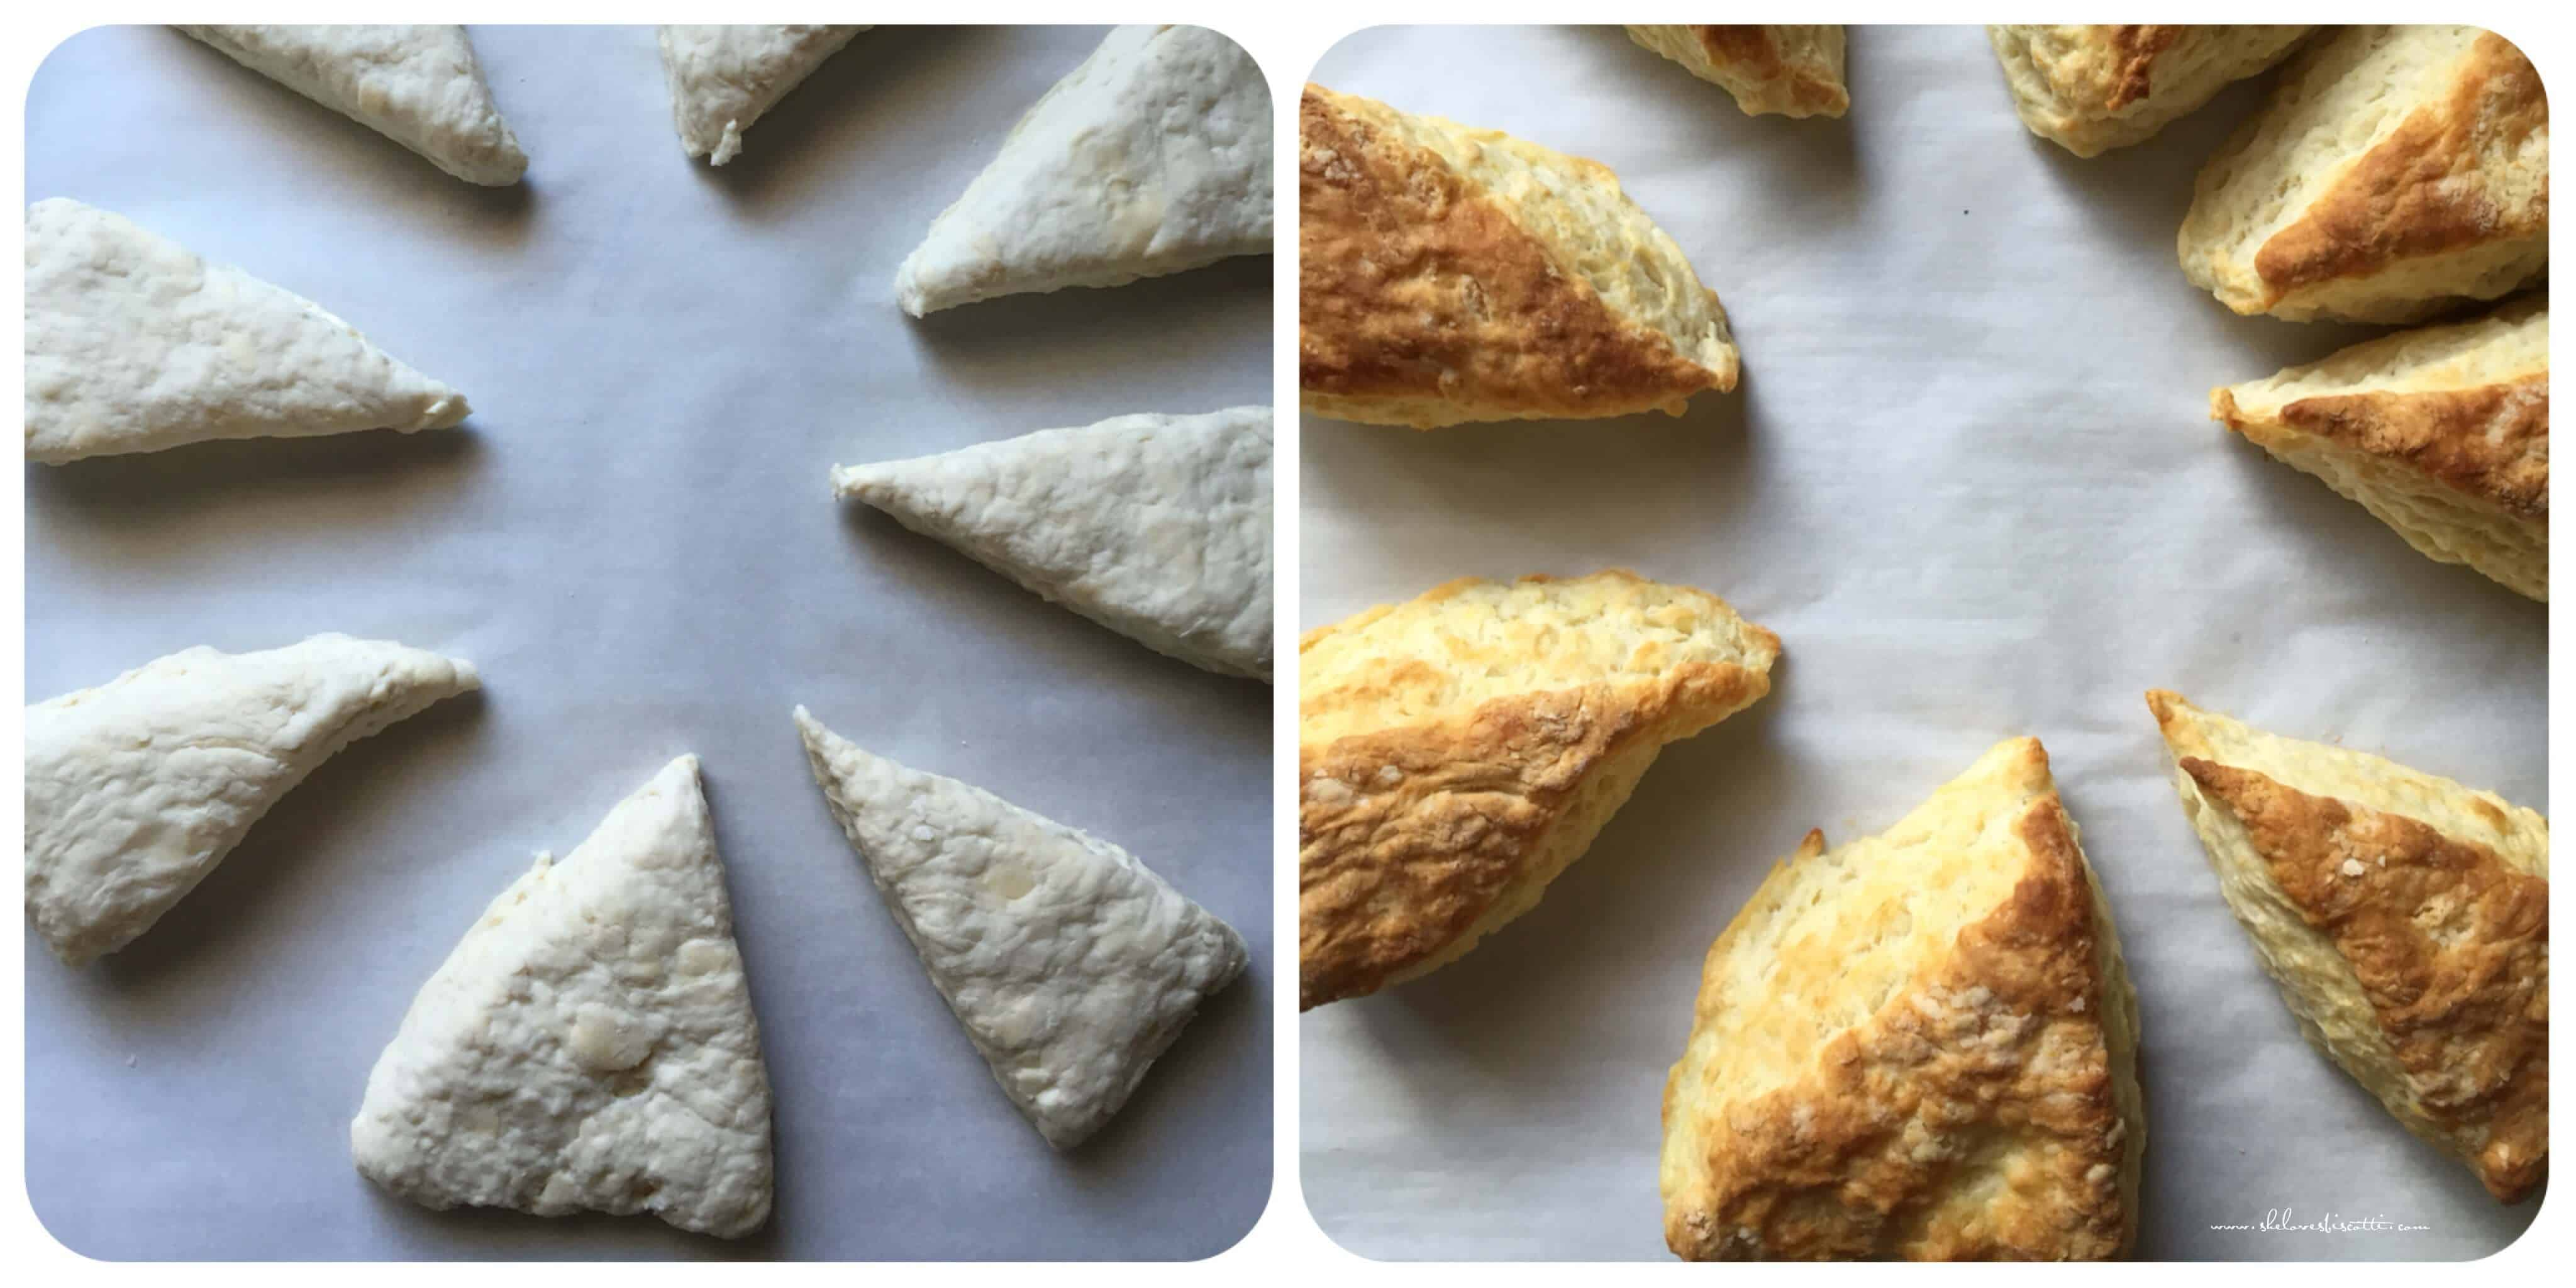 A photo collage of the biscuits before and after they are baked.